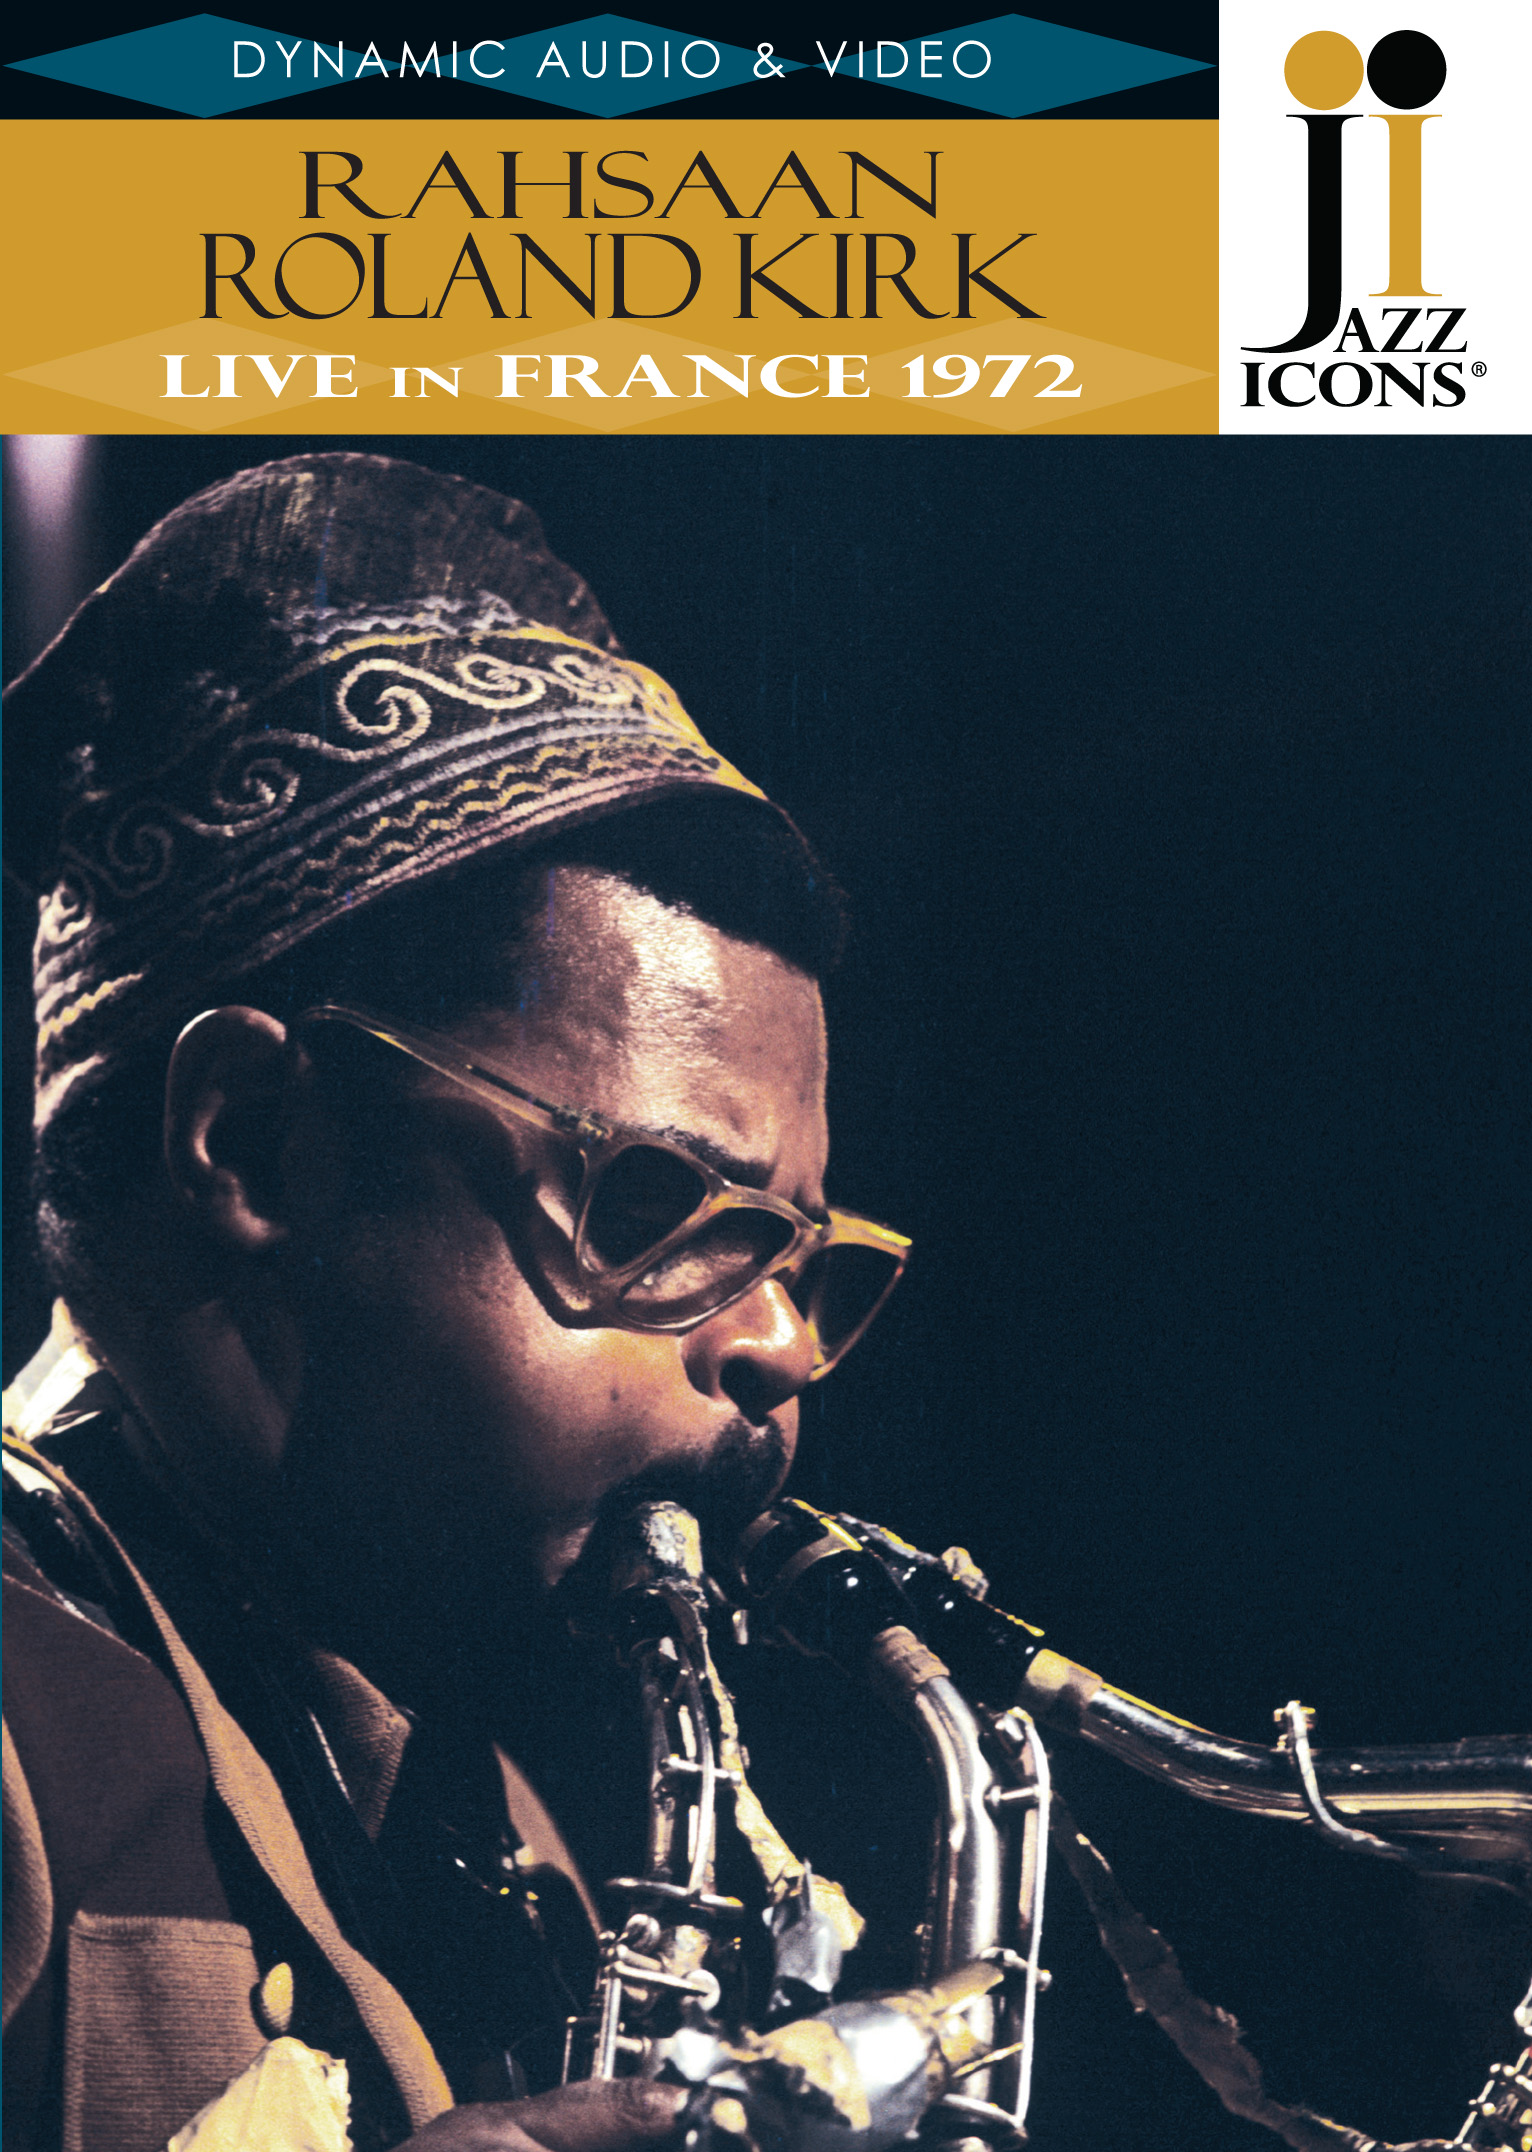 Jazz Icons: Rahsaan Roland Kirk - Live in France 1972